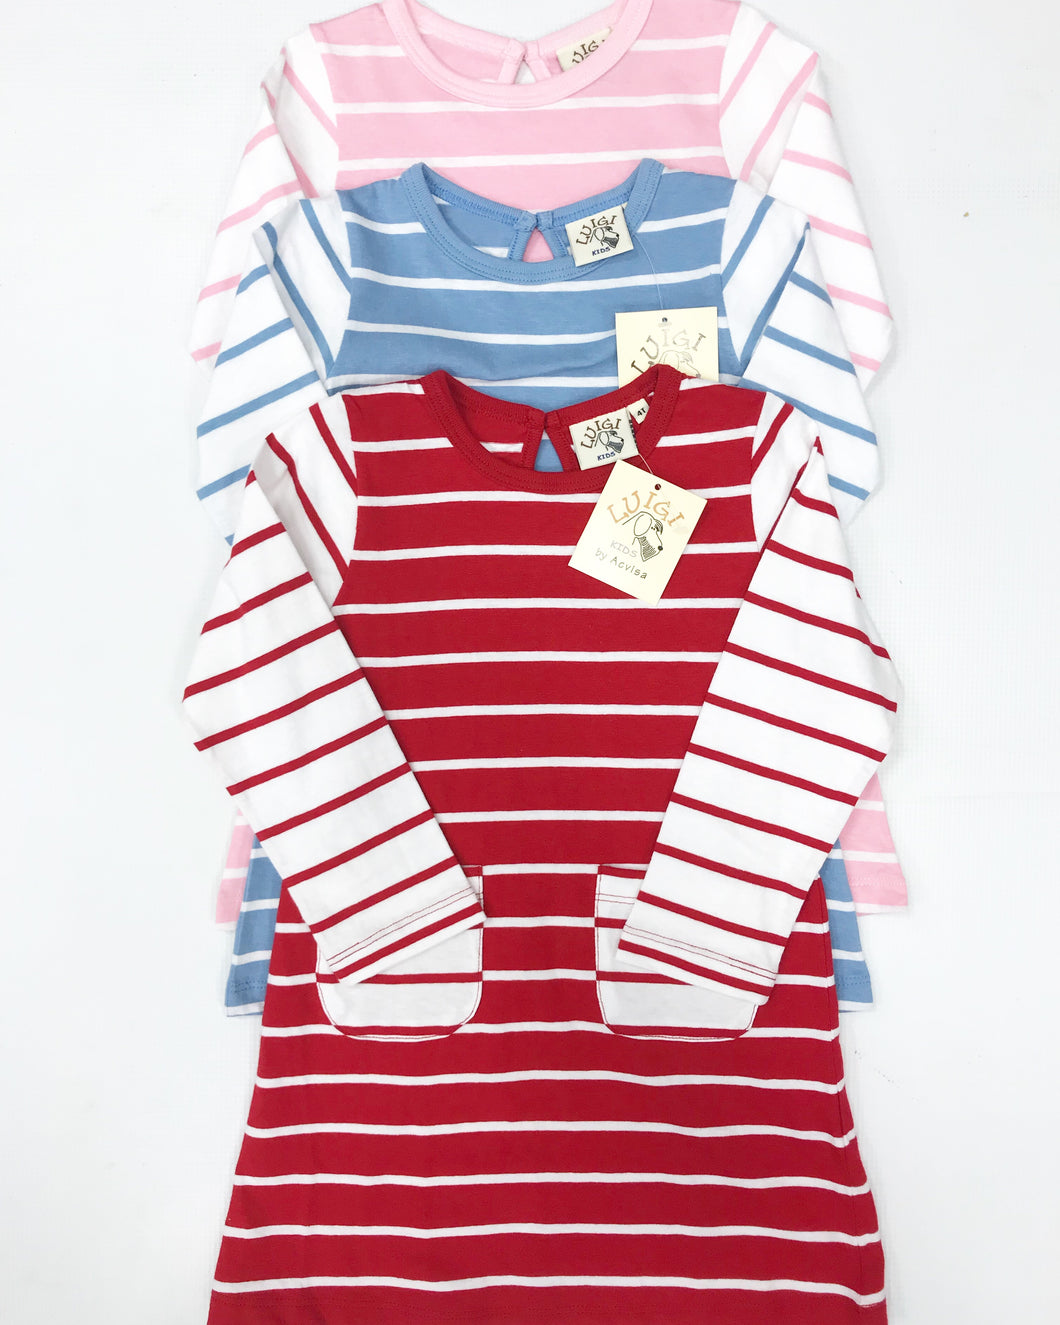 L/S Red Stripe Dress w/ Pockets